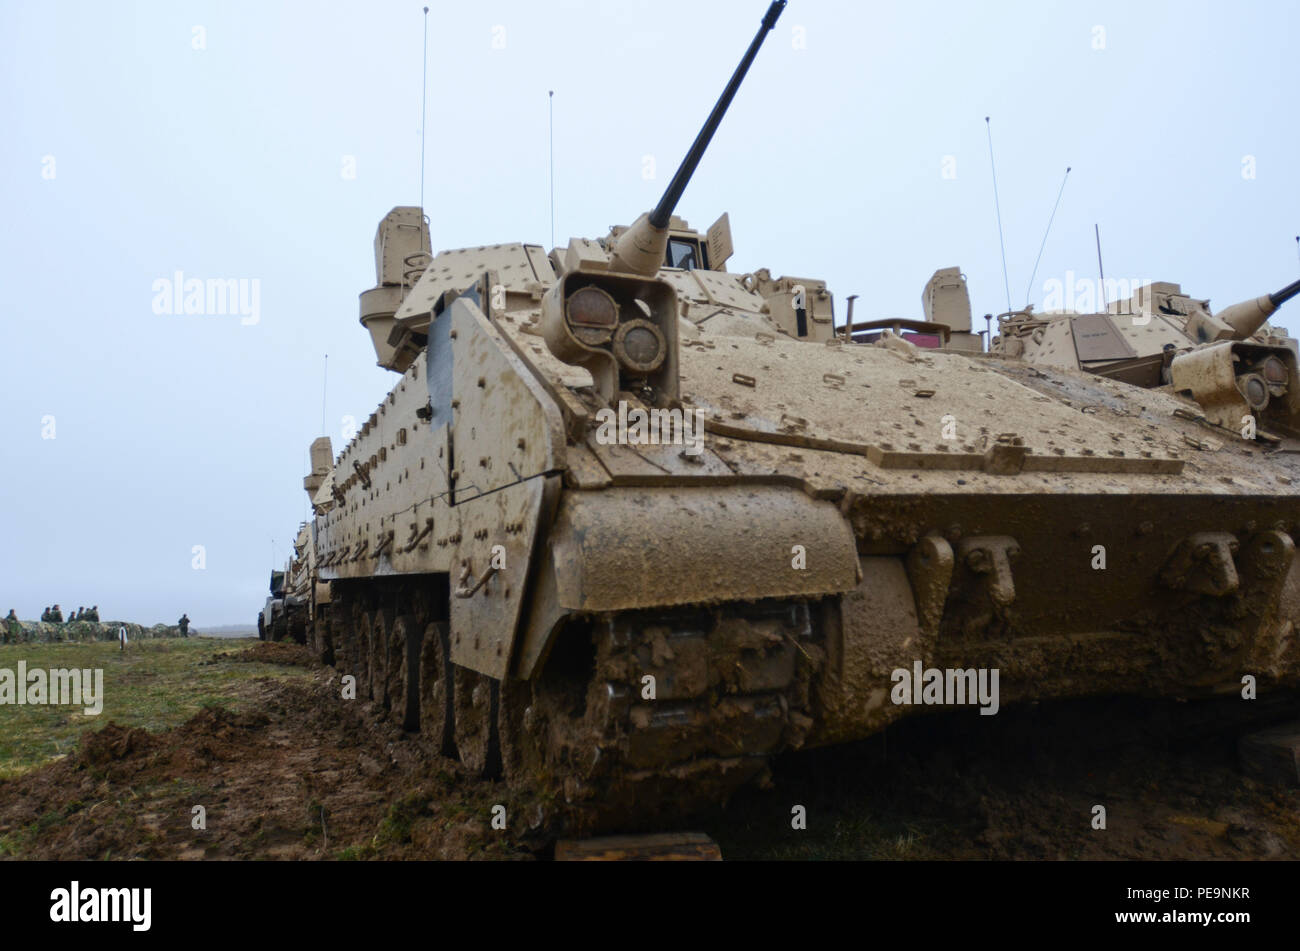 A U.S. Army Bradley Fighting Vehicle is covered with mud during Exercise Peace Sentinel at Novo Selo Training Center, Bulgaria, Nov. 24, 2015. (U.S. Army photo by Staff Sgt. Steven M. Colvin/Released) - Stock Image